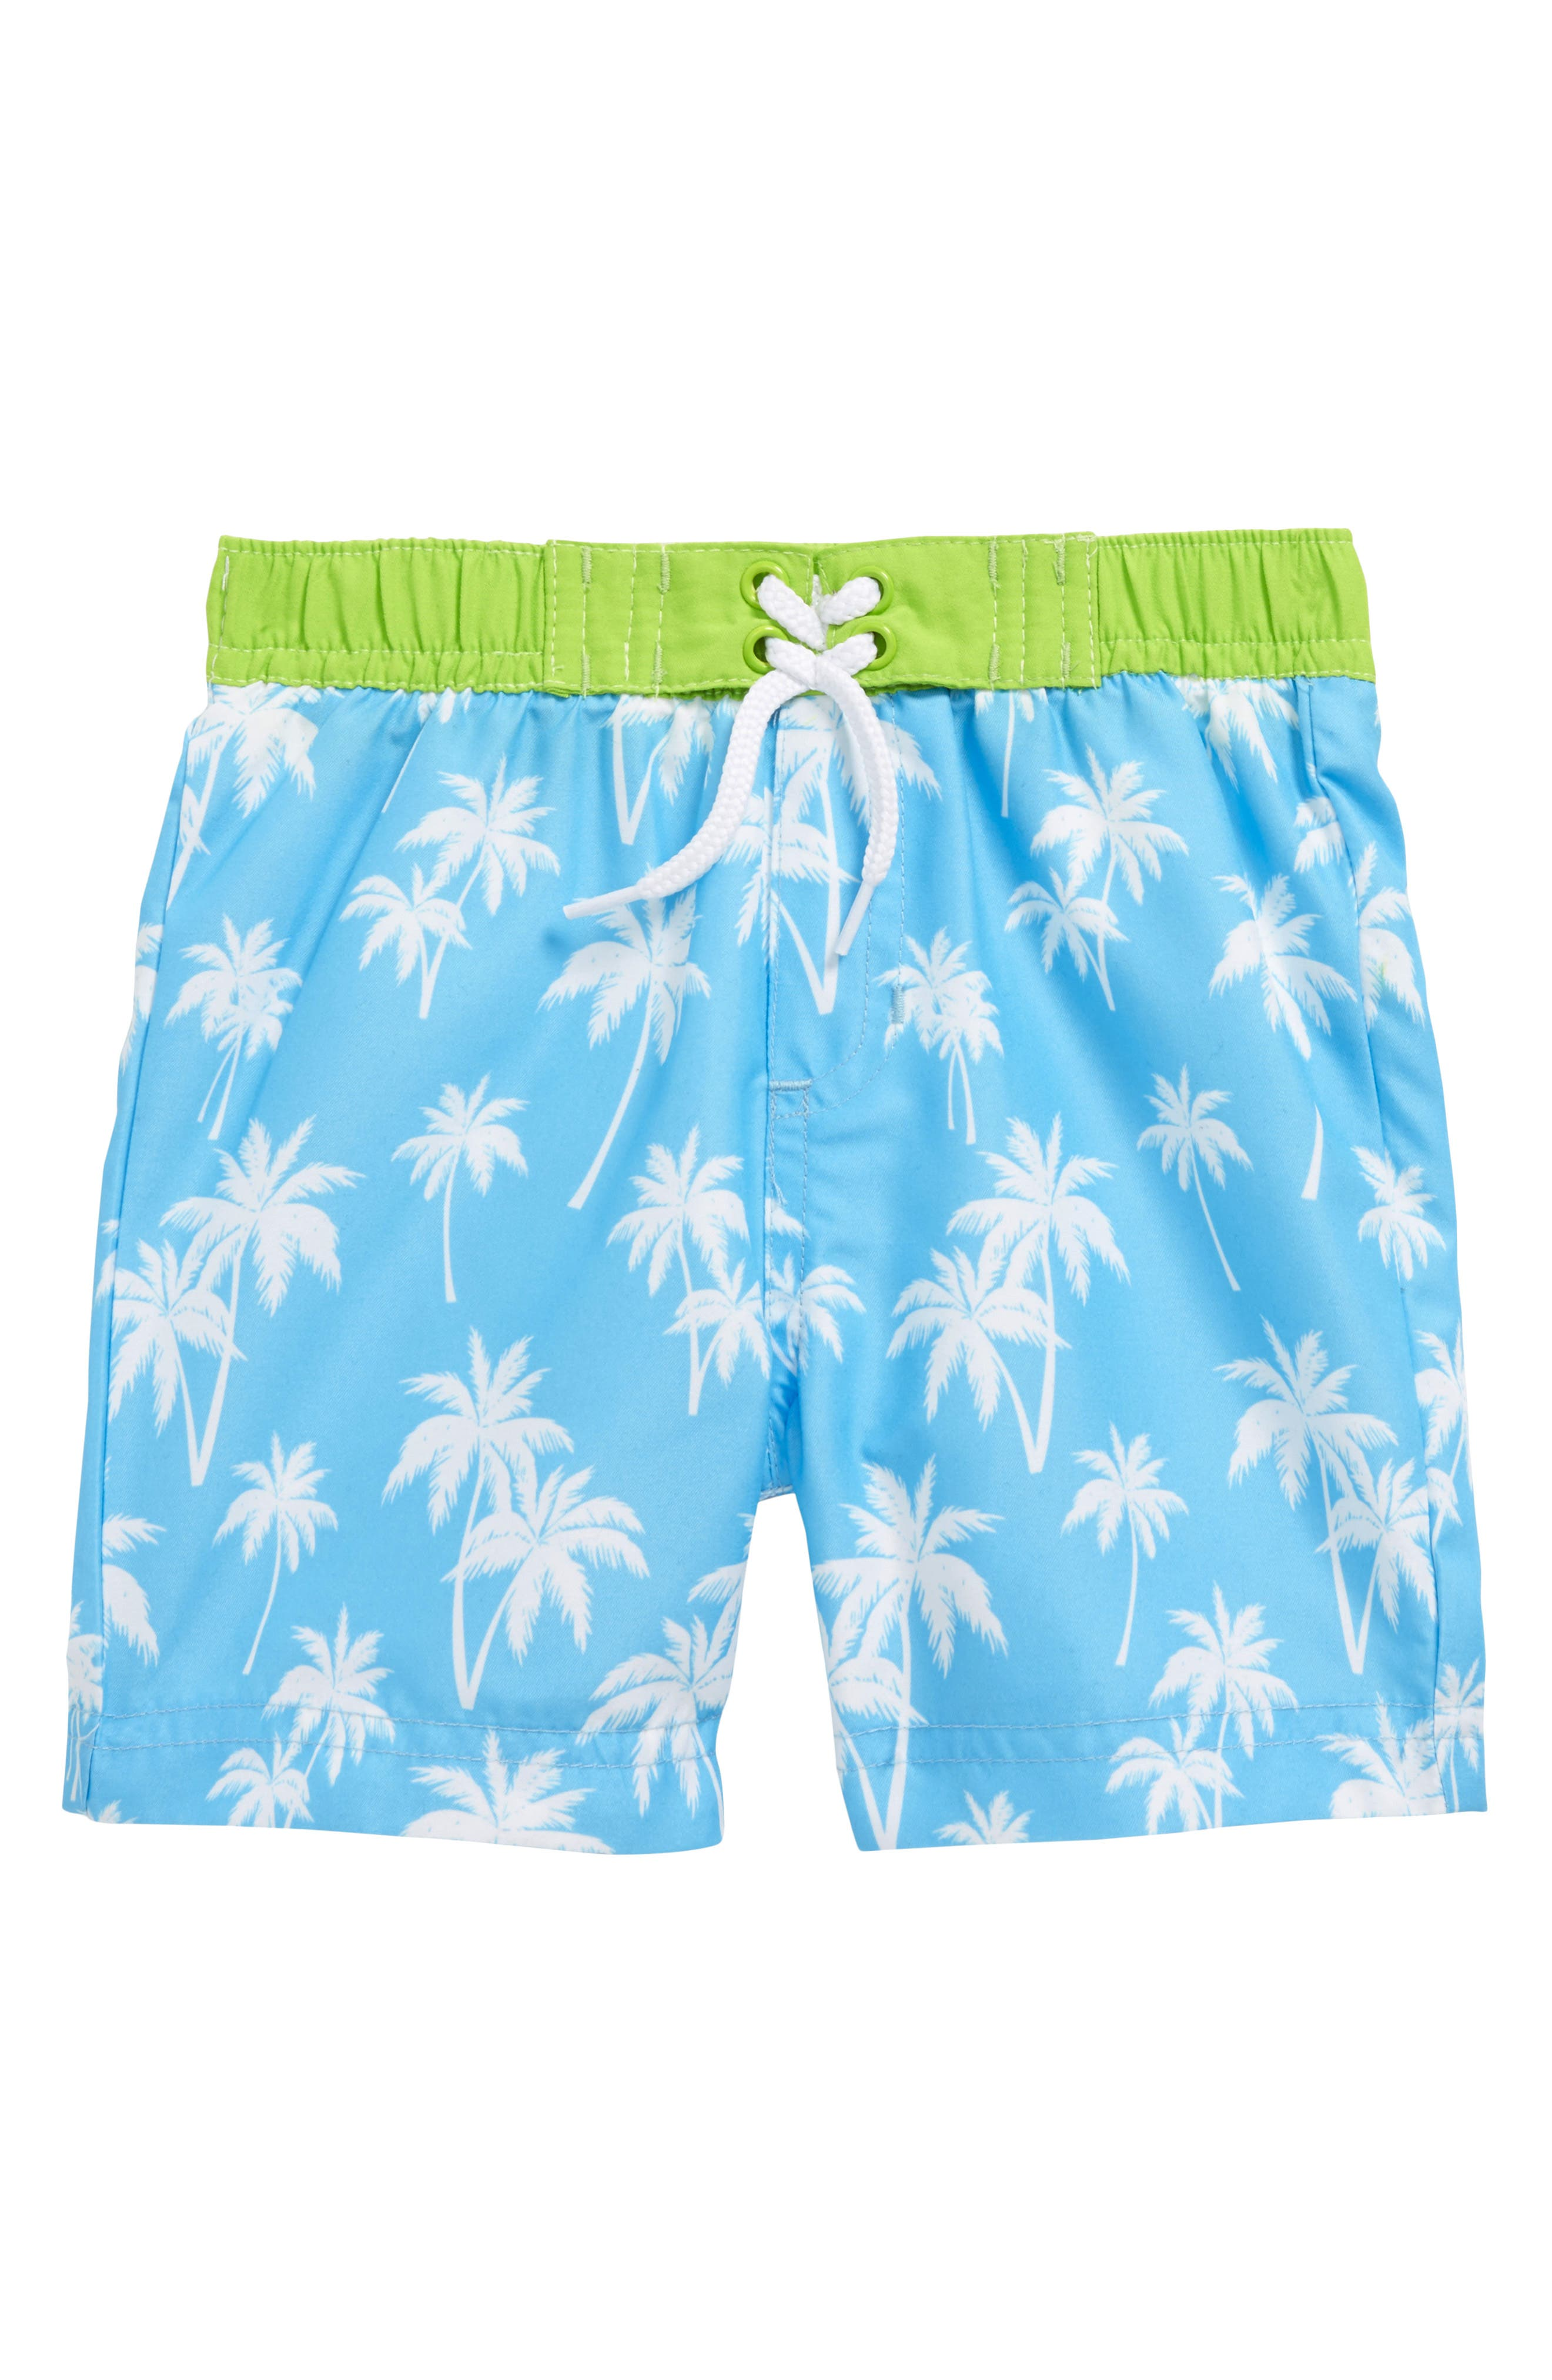 Palm Tree Swim Trunks,                             Main thumbnail 1, color,                             457